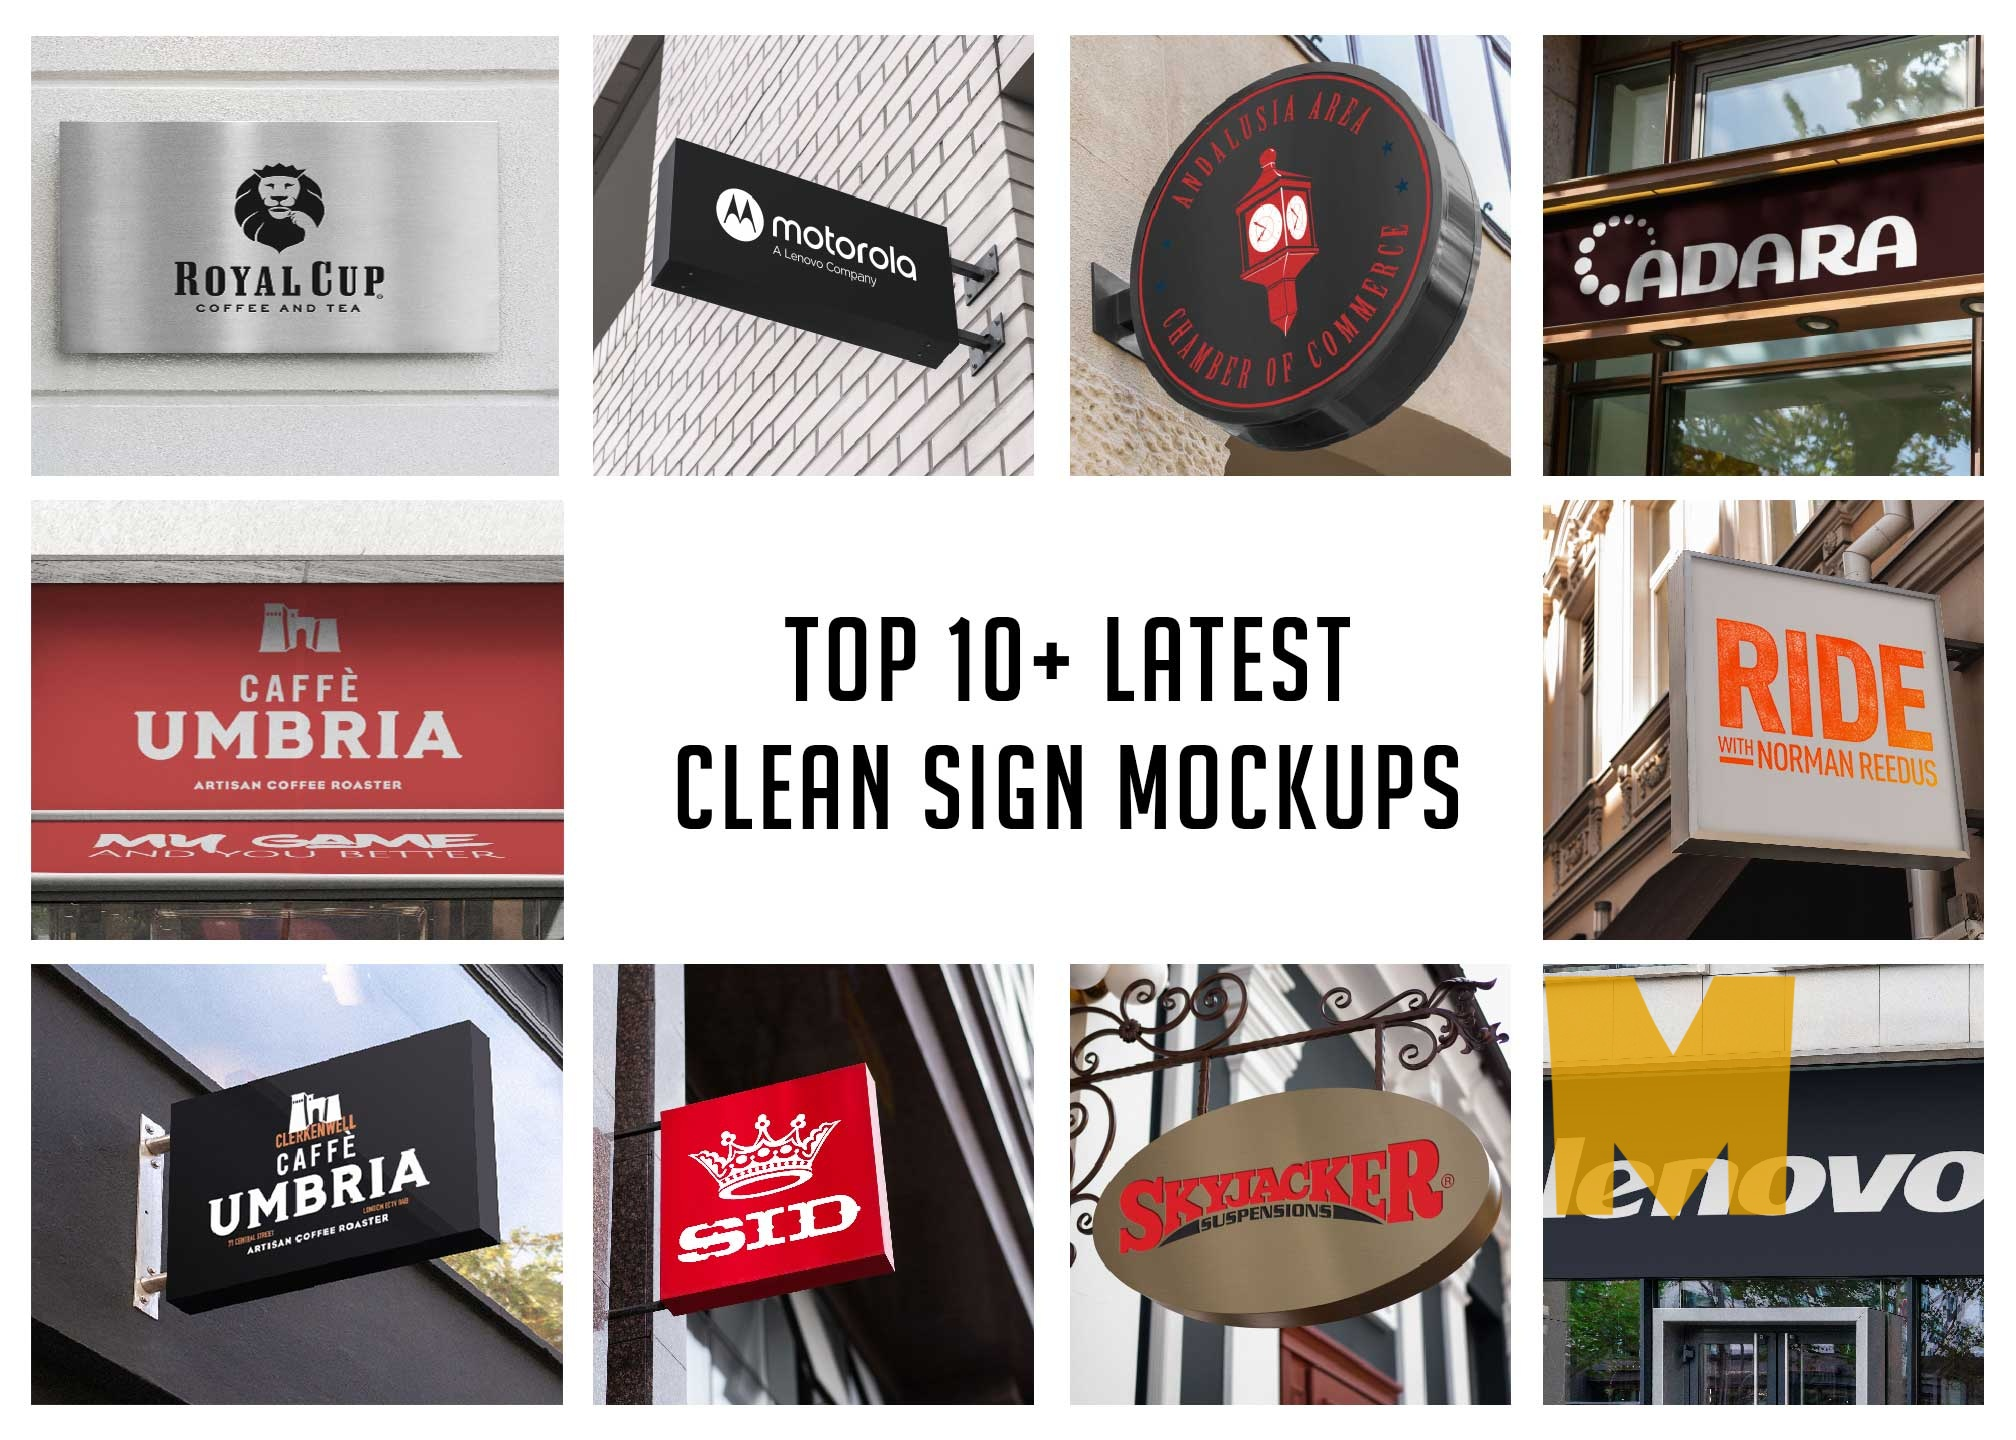 10+ Latest Clean Sign Mockups